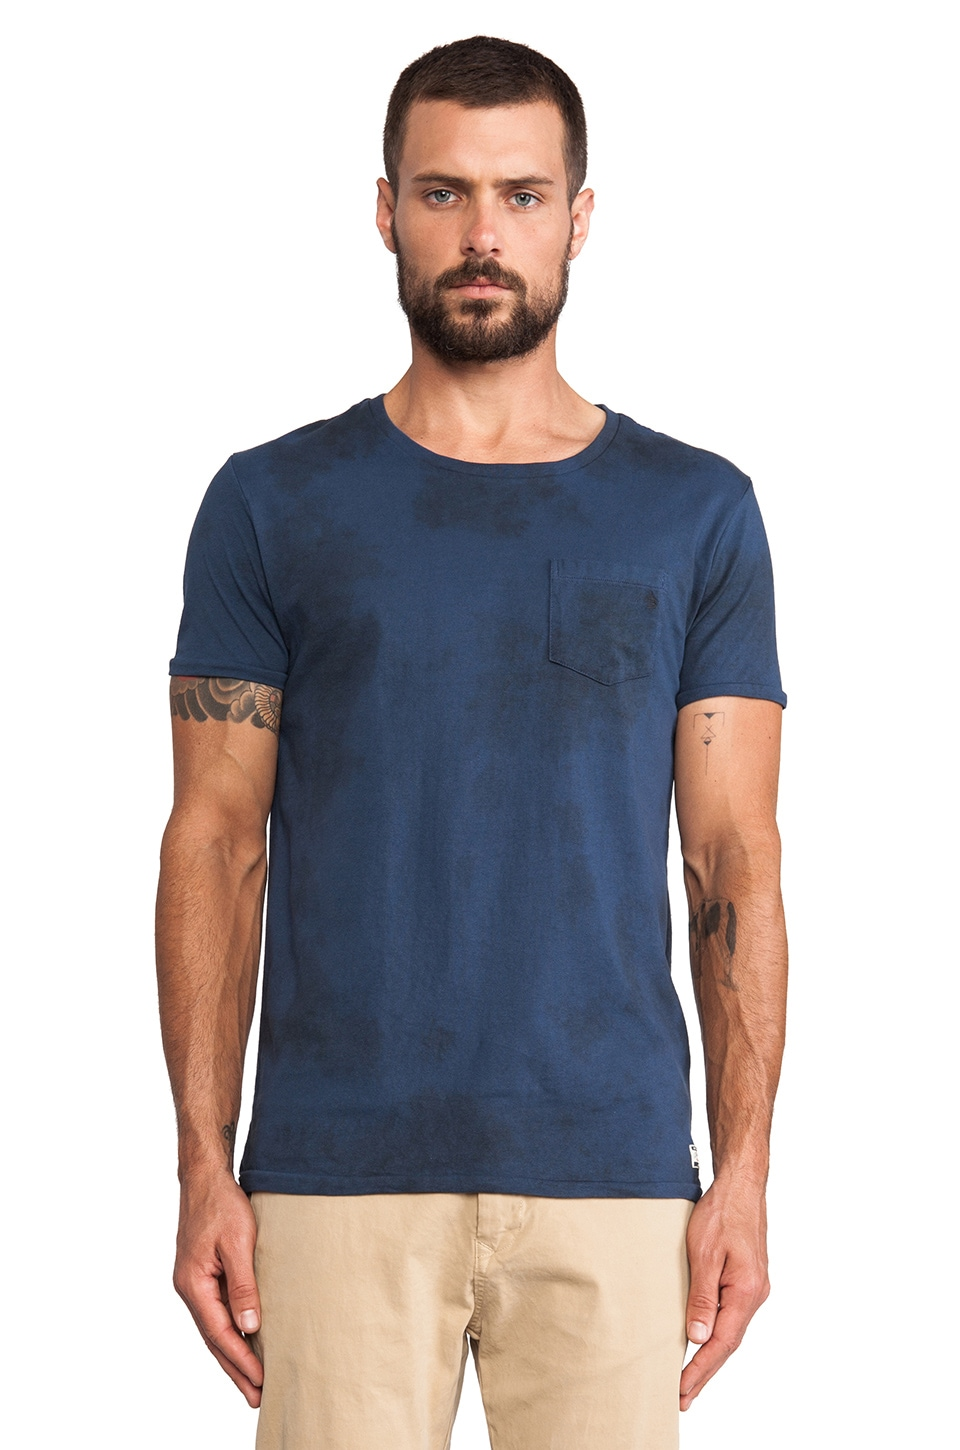 Scotch & Soda 1 Pocket Boxy Garment Dyed Tee in Navy